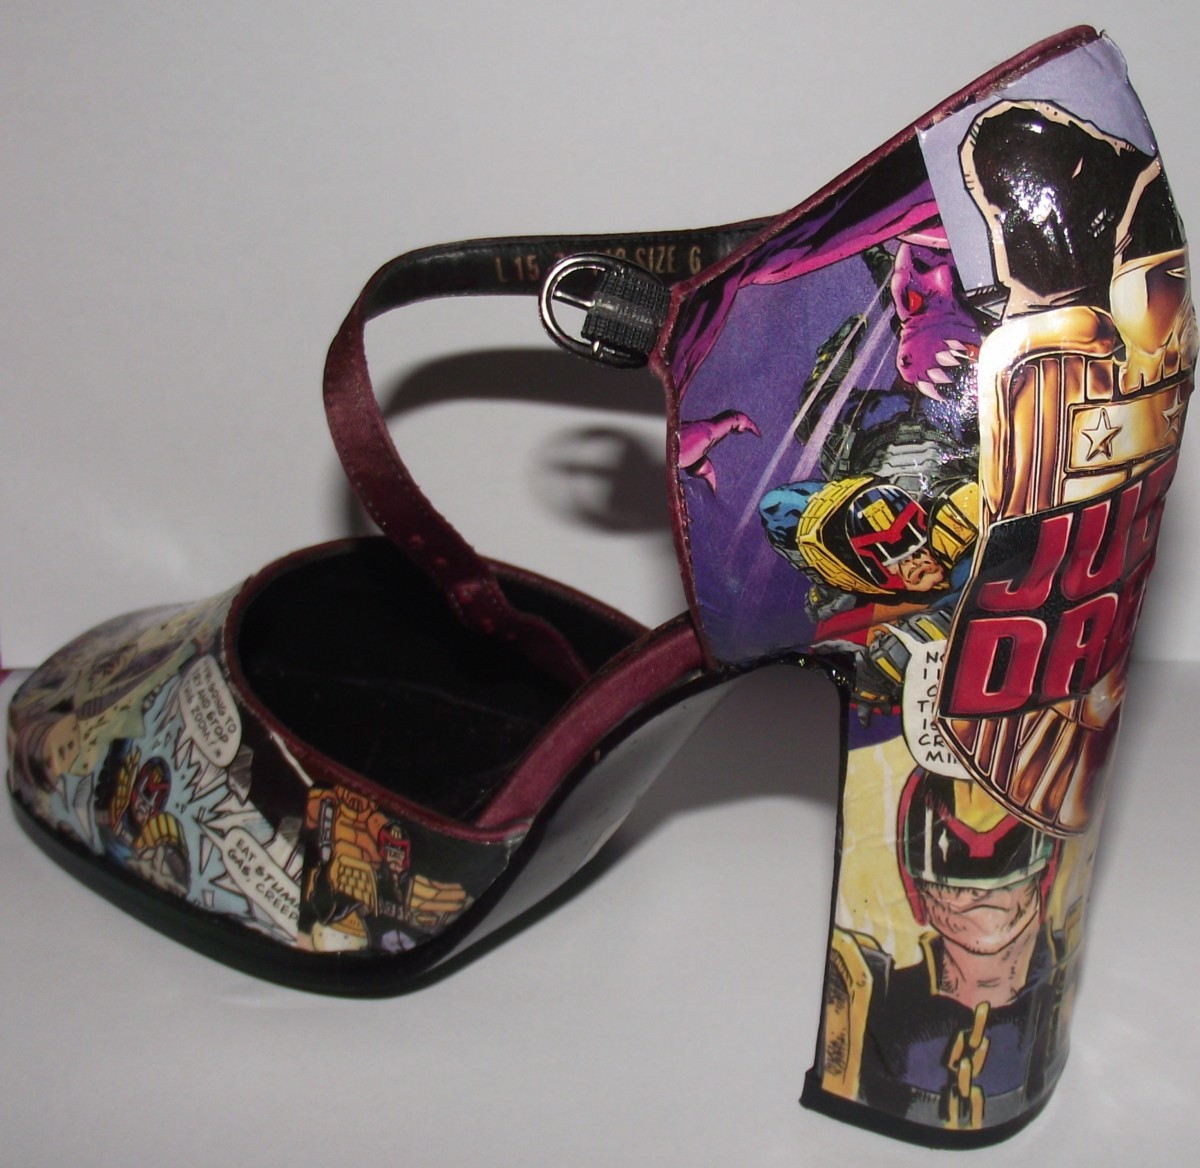 How To Make Comicbook Shoes